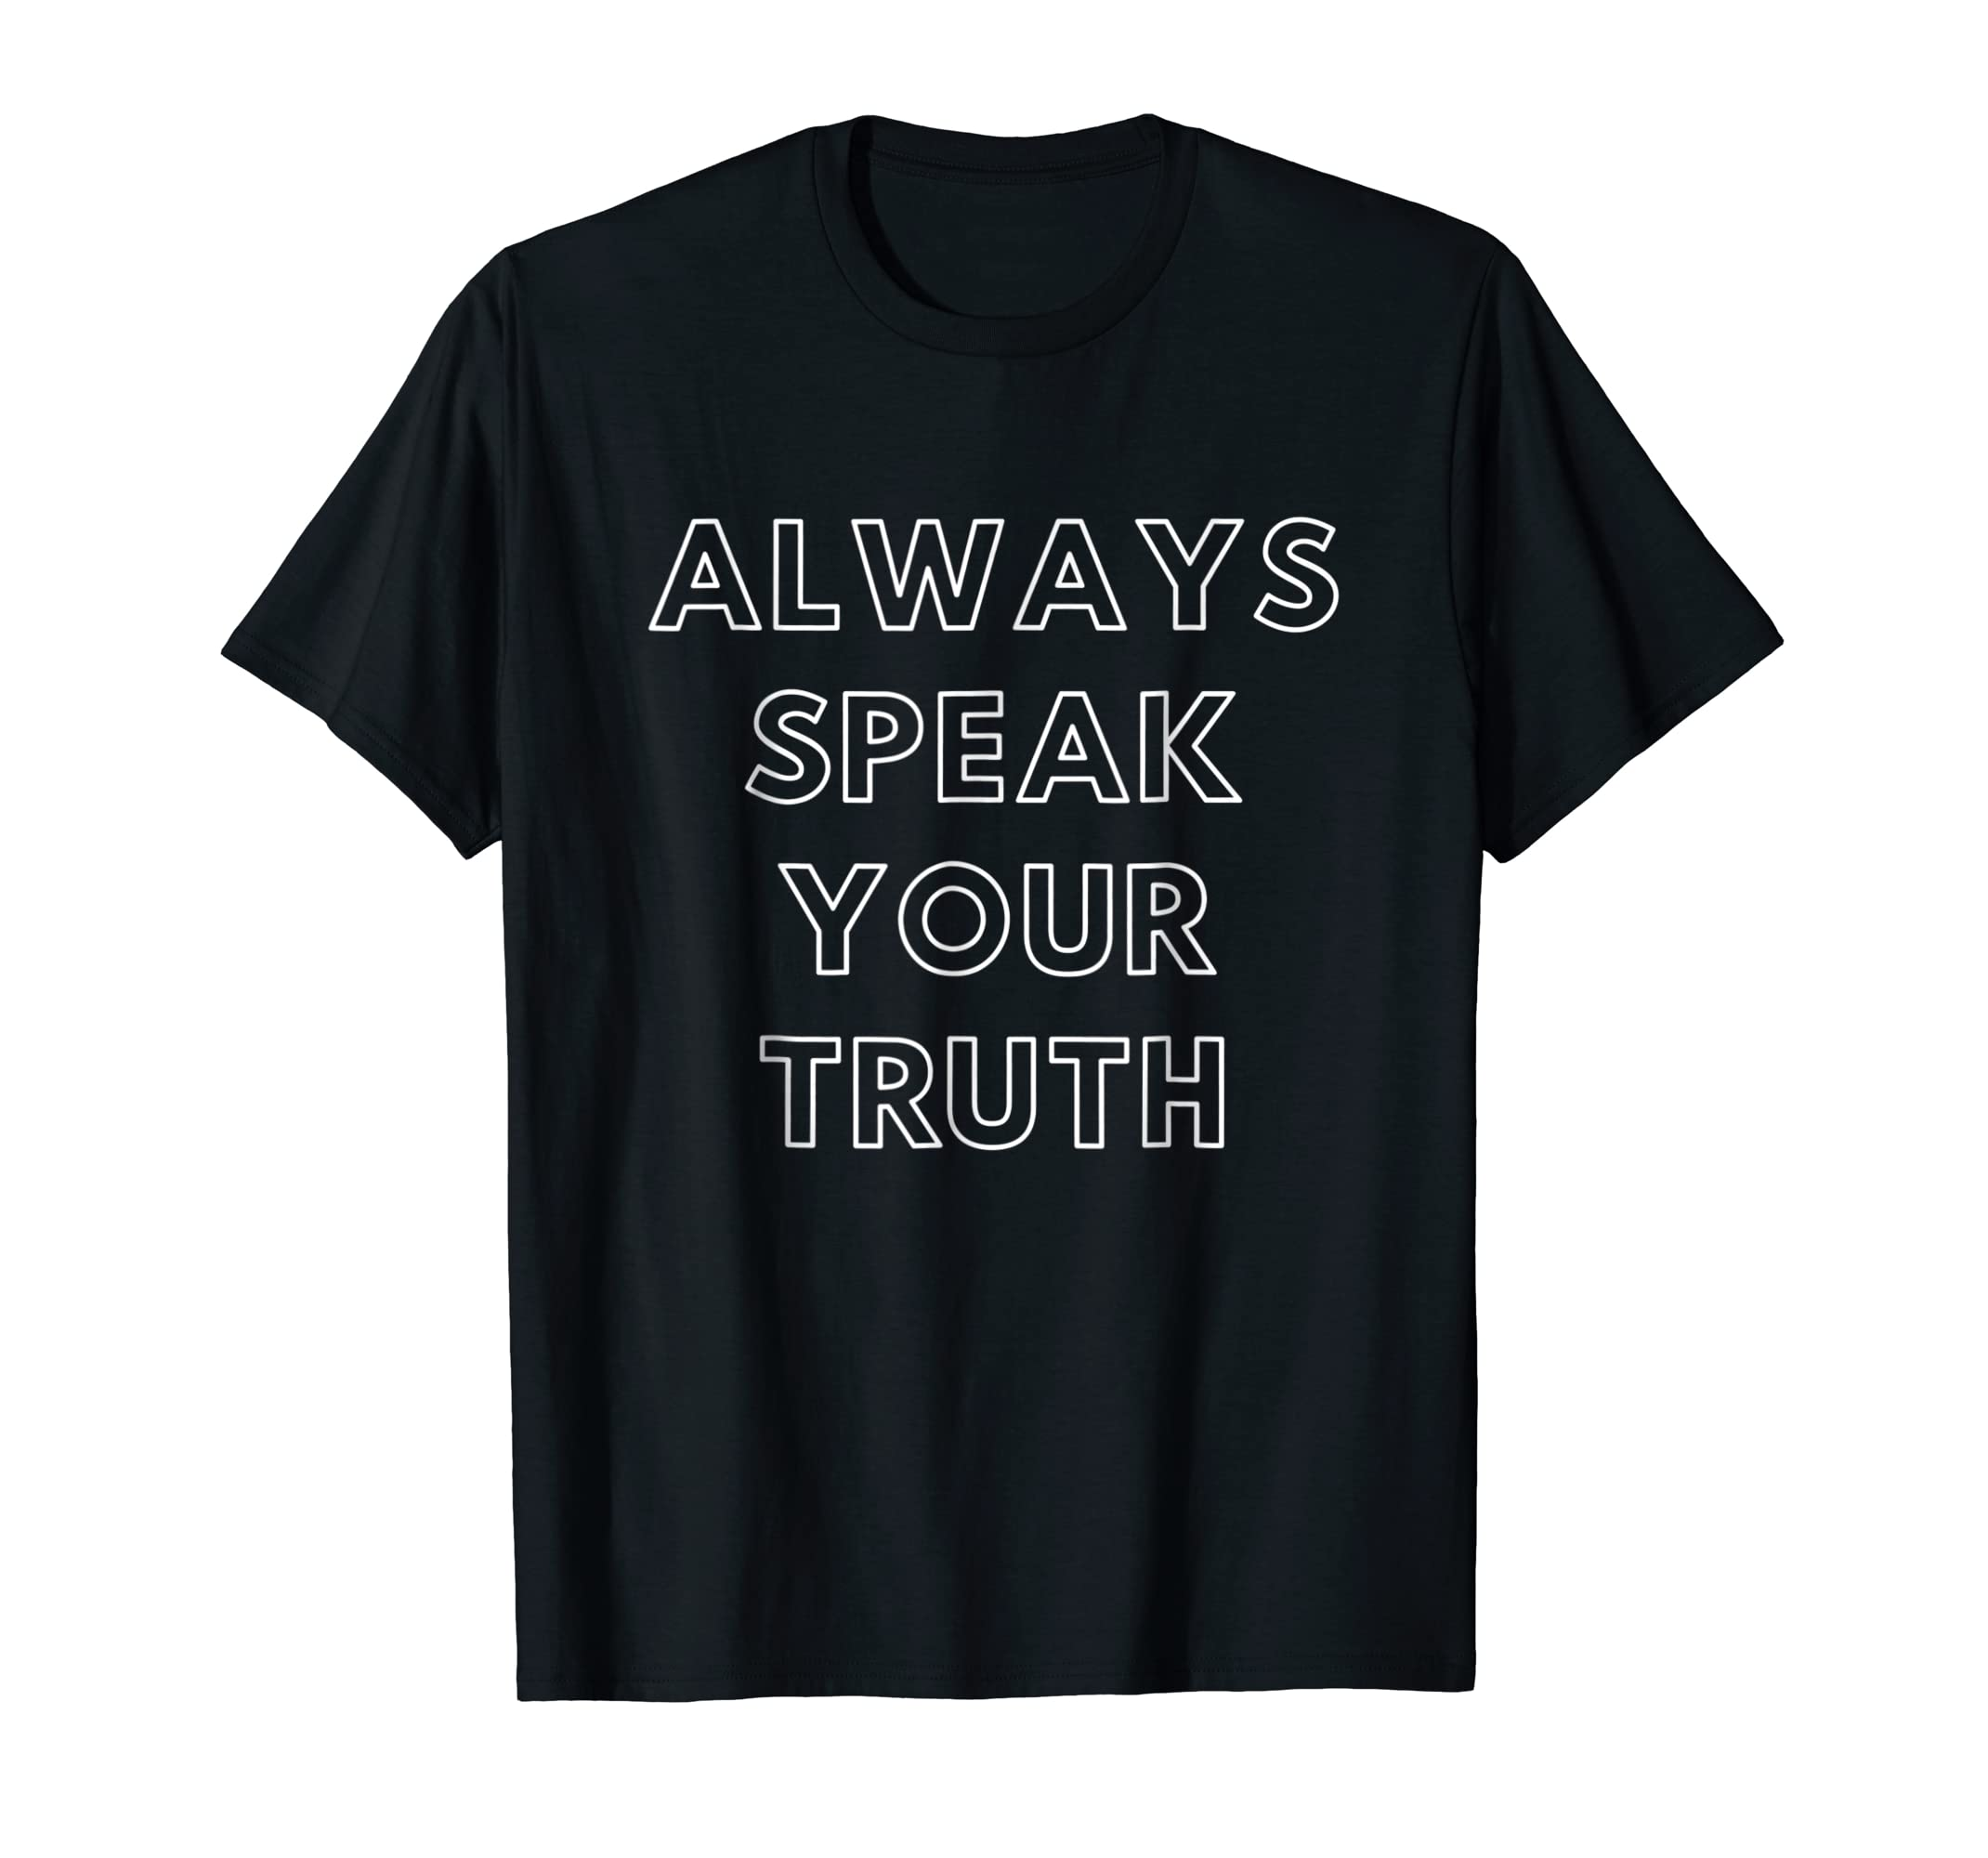 Always Speak Your Truth Shirt Women Men Girls-mt